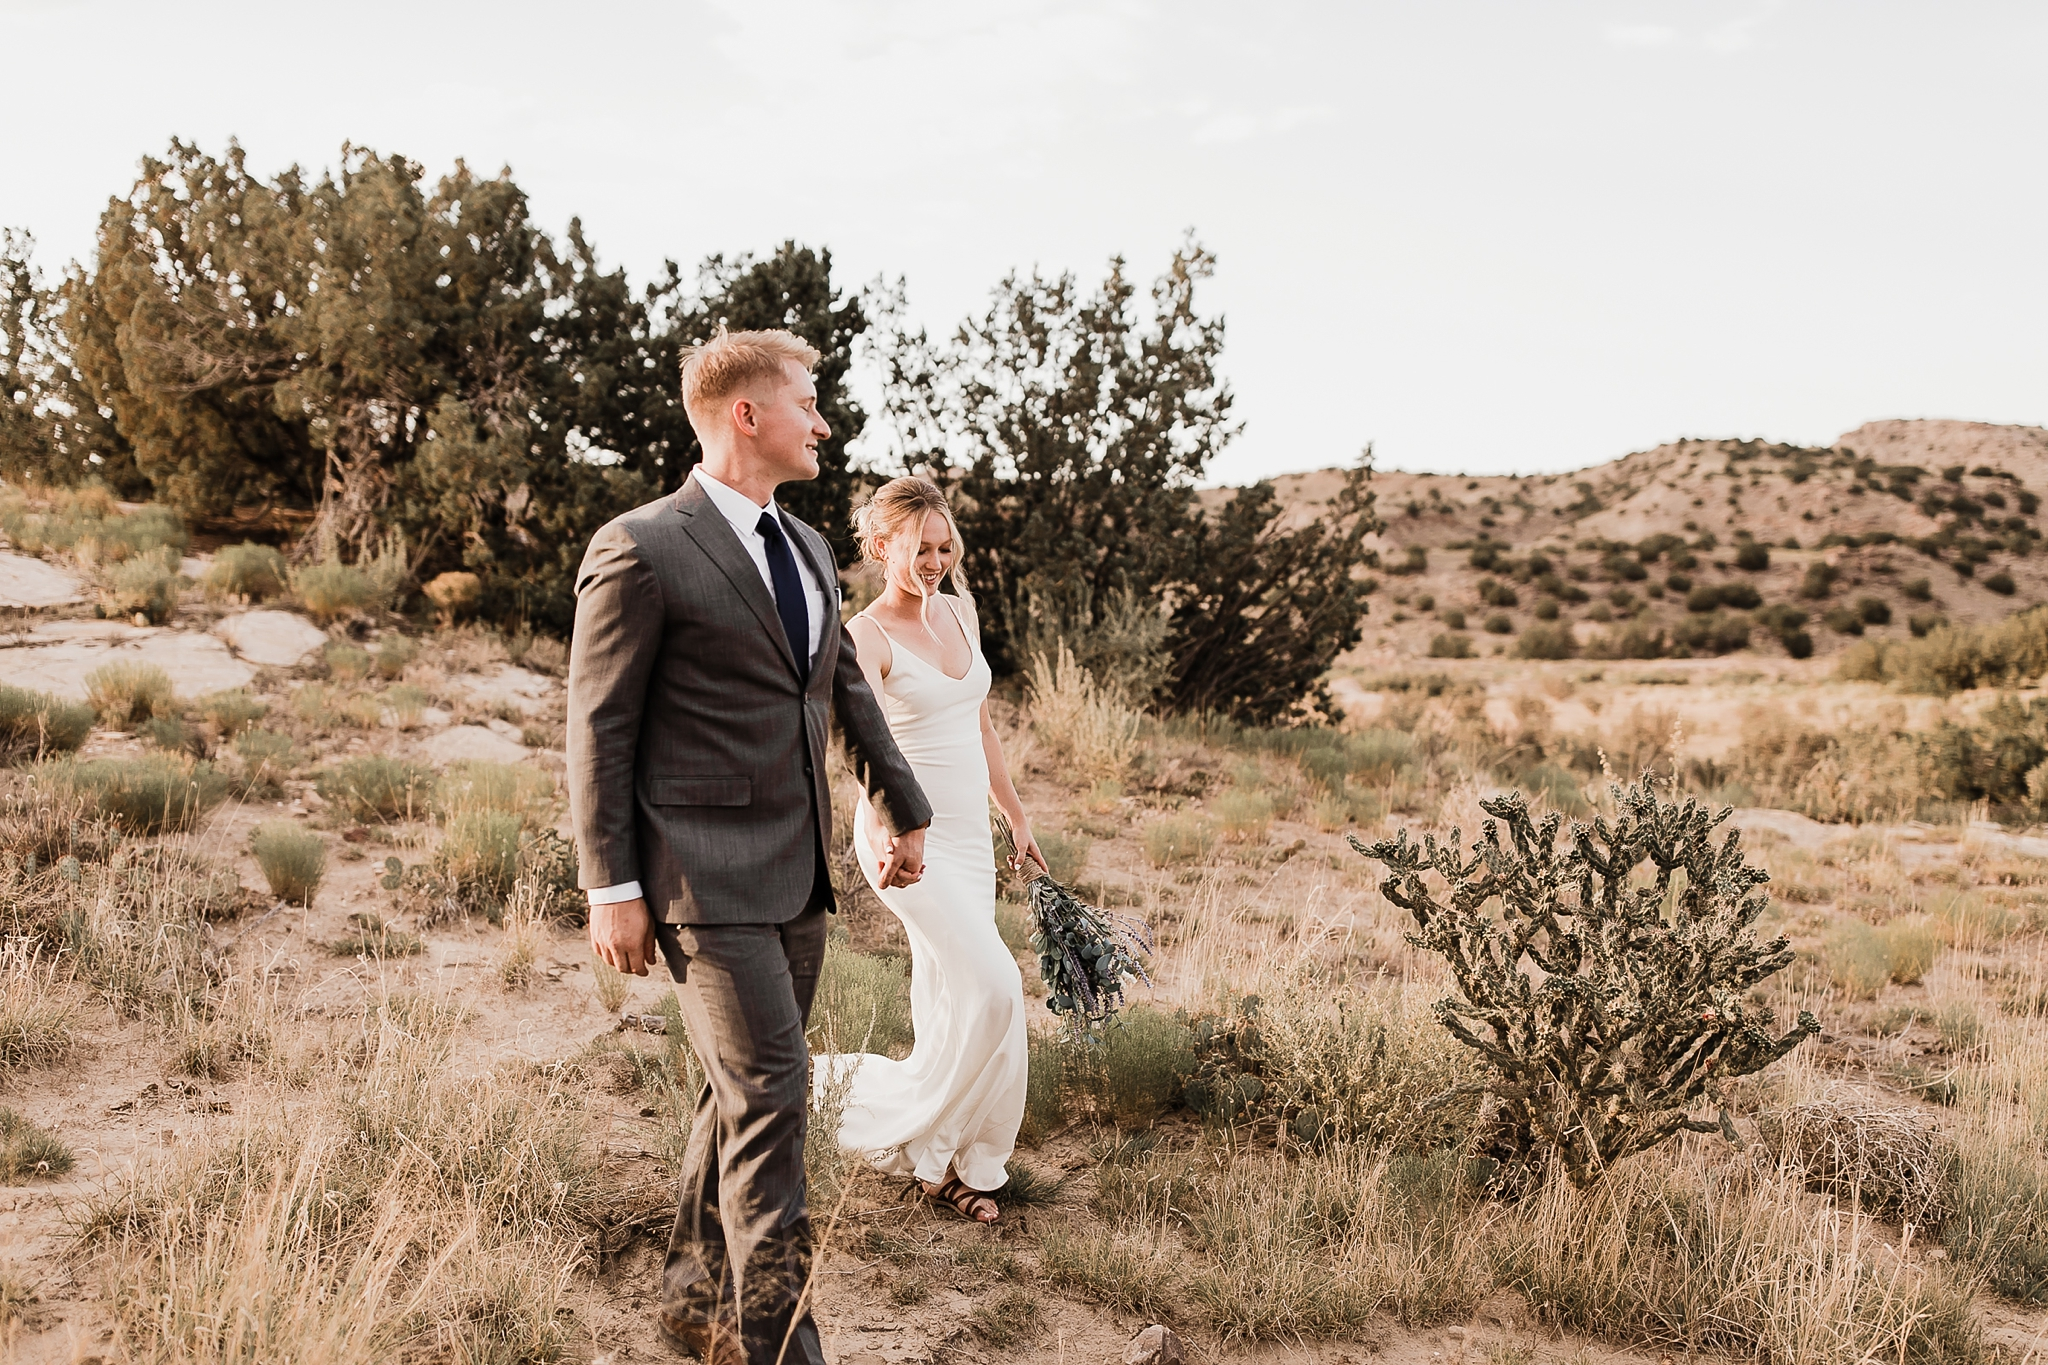 Alicia+lucia+photography+-+albuquerque+wedding+photographer+-+santa+fe+wedding+photography+-+new+mexico+wedding+photographer+-+new+mexico+wedding+-+new+mexico+elopement+-+elopment+-+mountain+elopement_0004.jpg